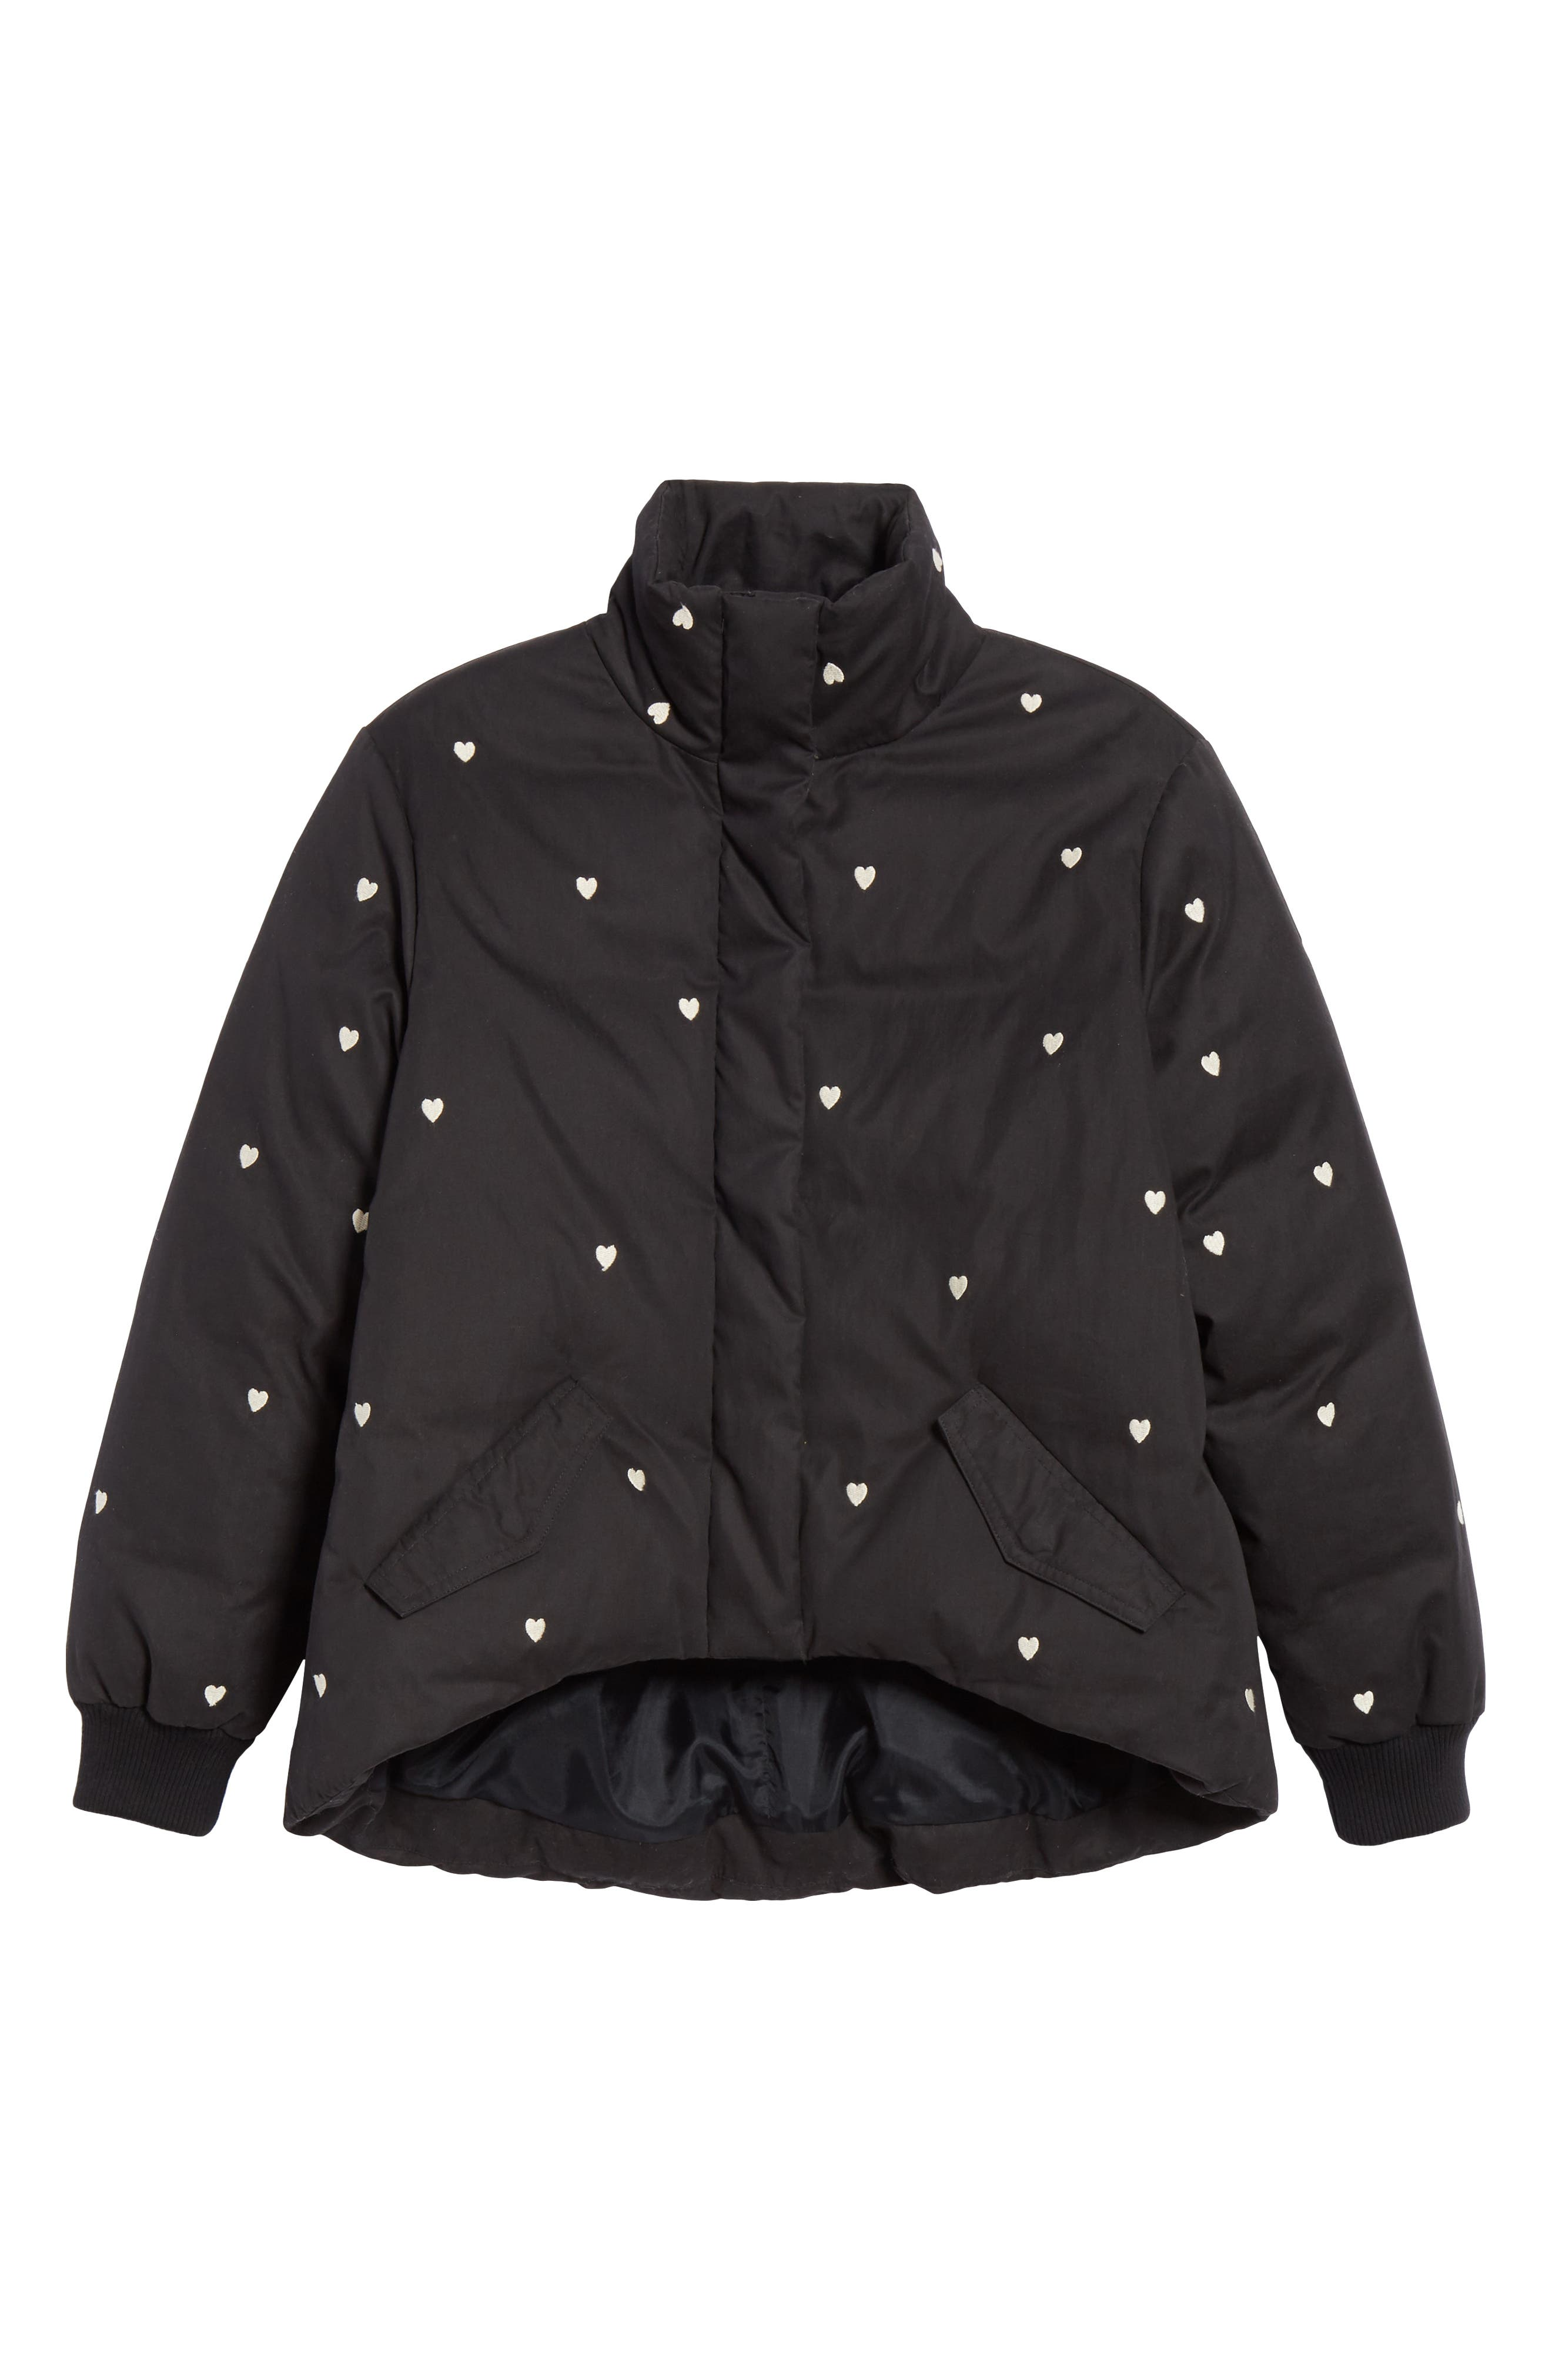 Heart Embroidered Puffer Coat,                             Alternate thumbnail 6, color,                             019